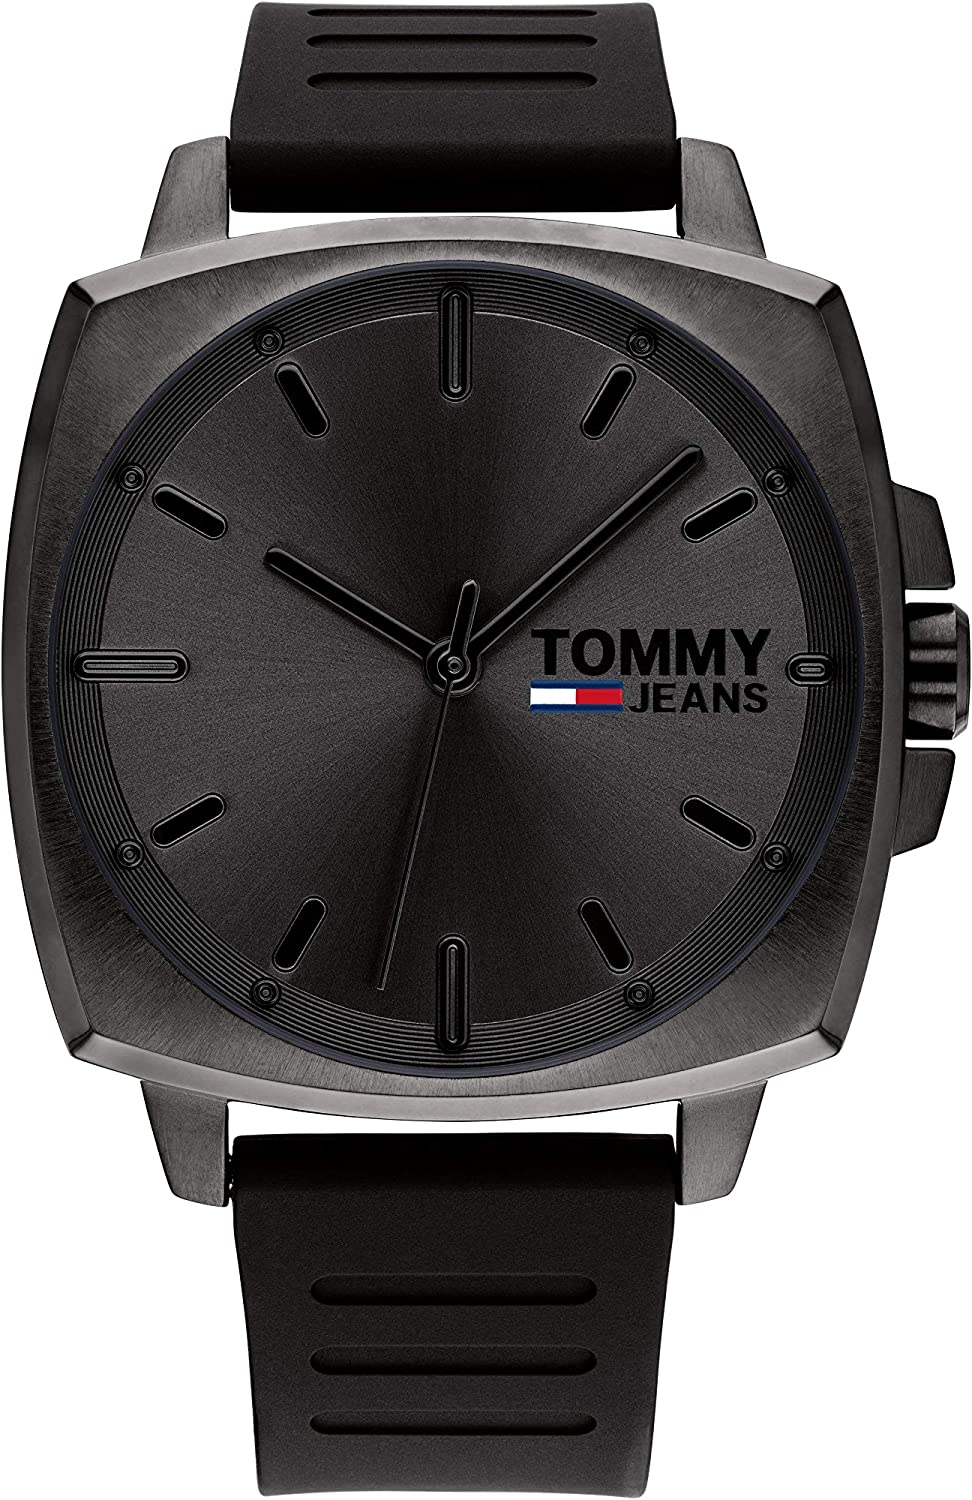 Tommy Hilfiger Jeans Tucson Mall Men's Watch Stainless Steel an Ranking TOP1 Quartz